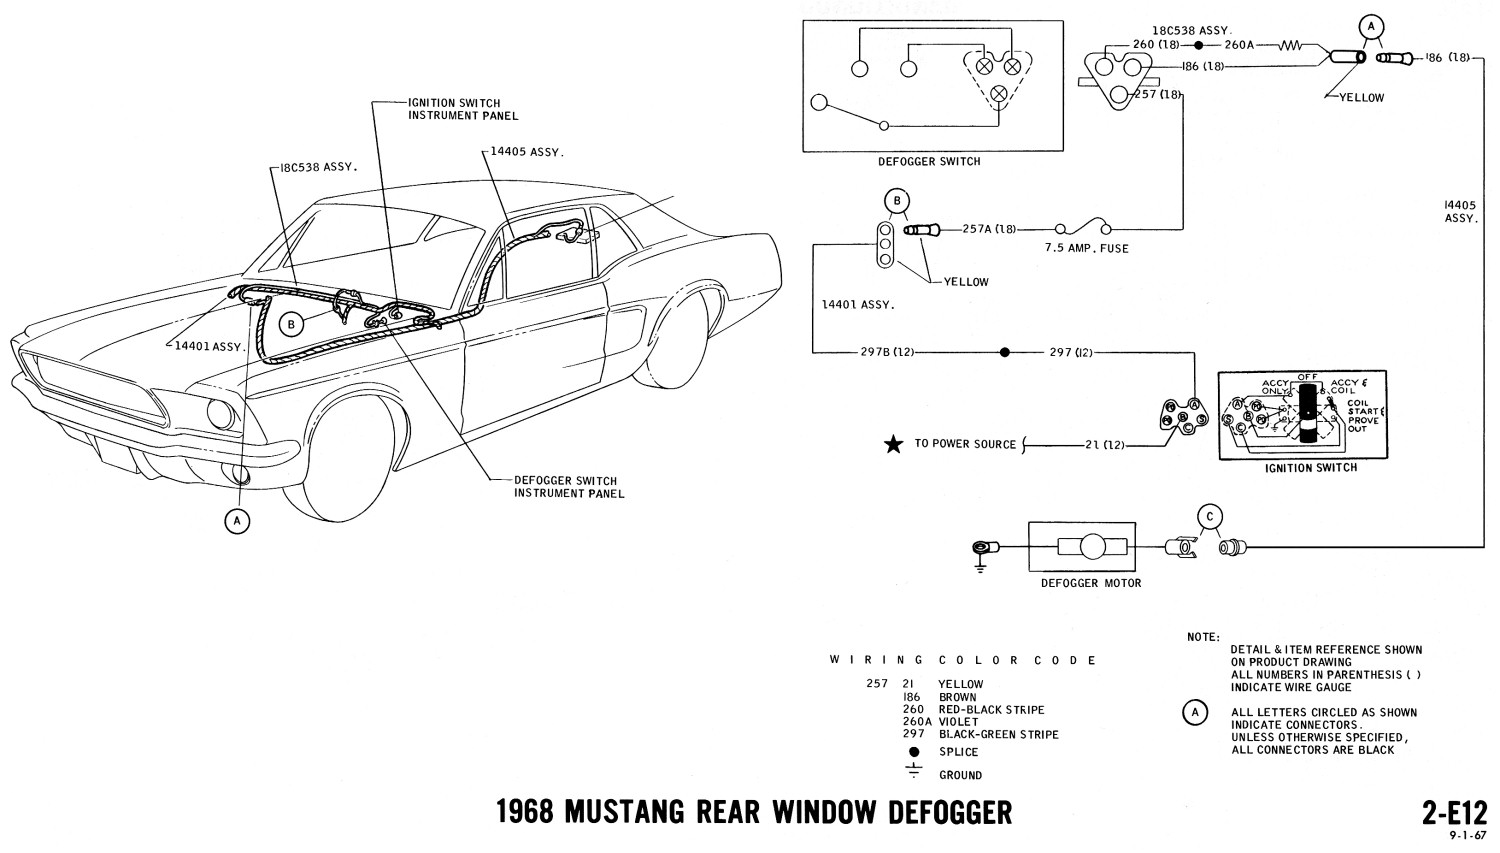 1968 mustang wiring diagrams evolving software rh peterfranza com 1968 Mustang Ignition Switch Wiring Diagram 68 Mustang Wiring Diagram